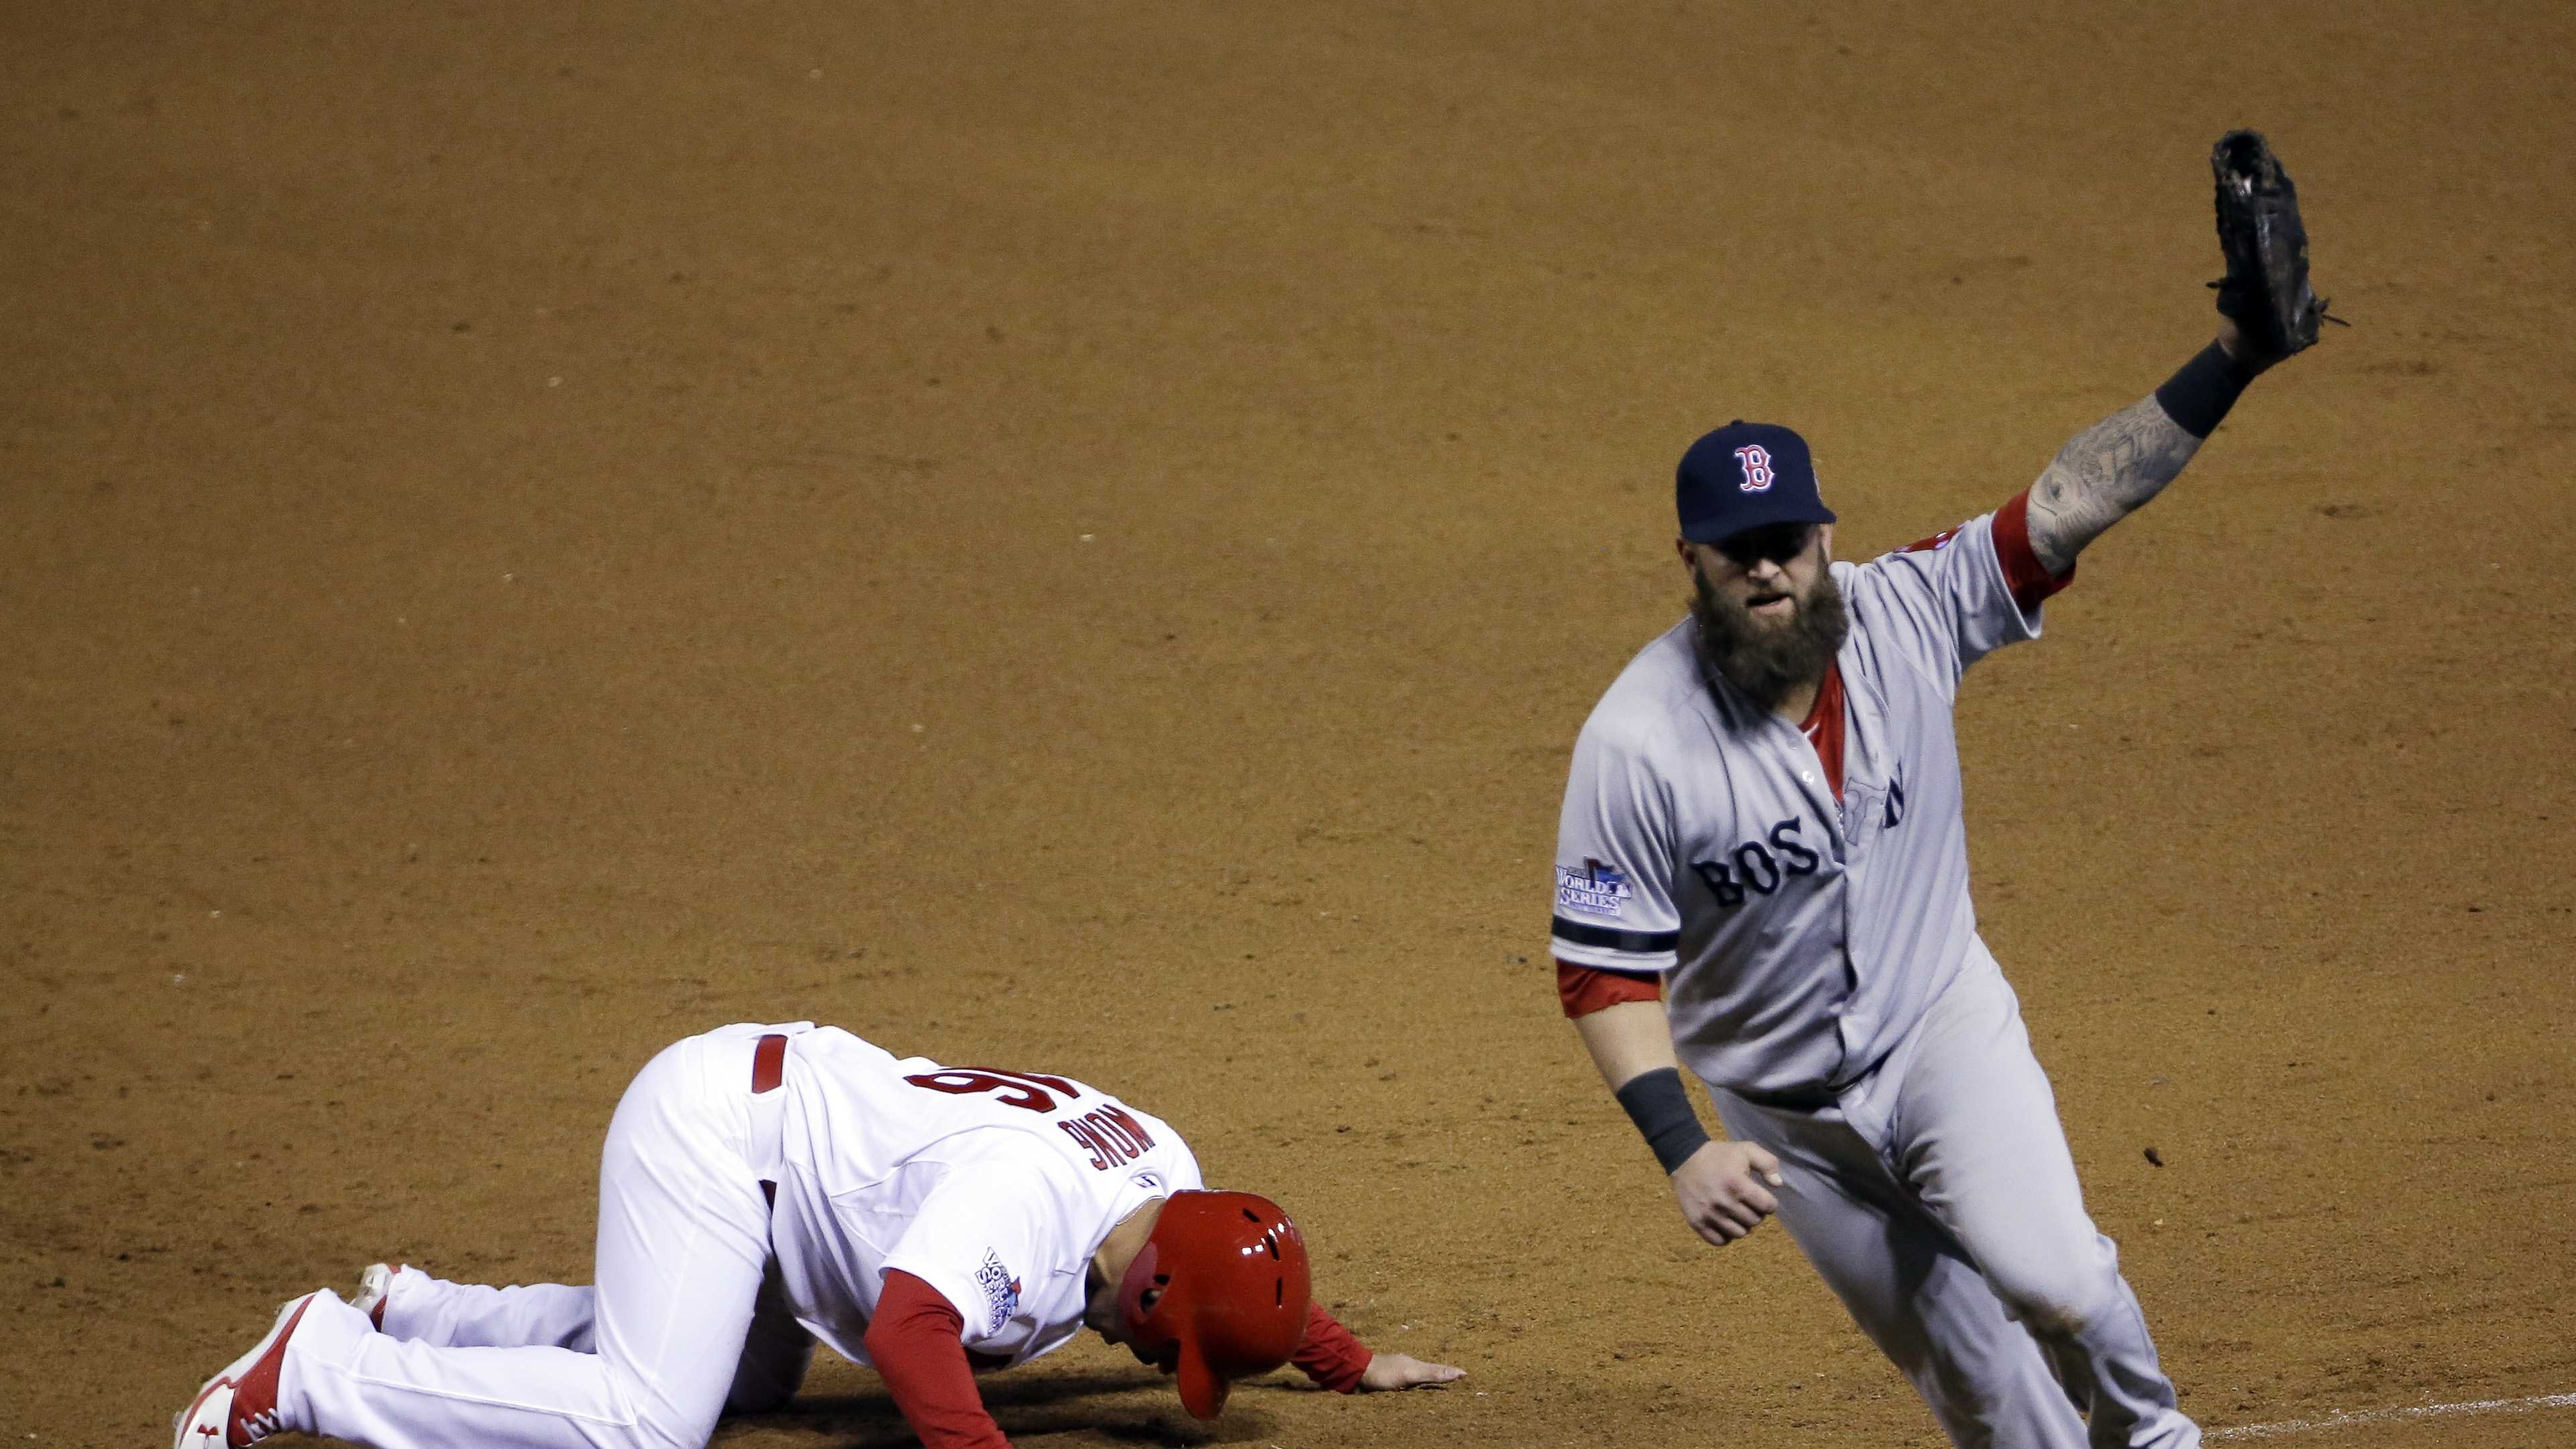 Boston Red Sox first baseman Mike Napoli celebrates after tagging out St. Louis Cardinals' Kolten Wong on a pick-off attempt to end Game 4 of baseball's World Series Sunday, Oct. 27, 2013, in St. Louis. The Red Sox won 4-2 to ties the series at 2-2.